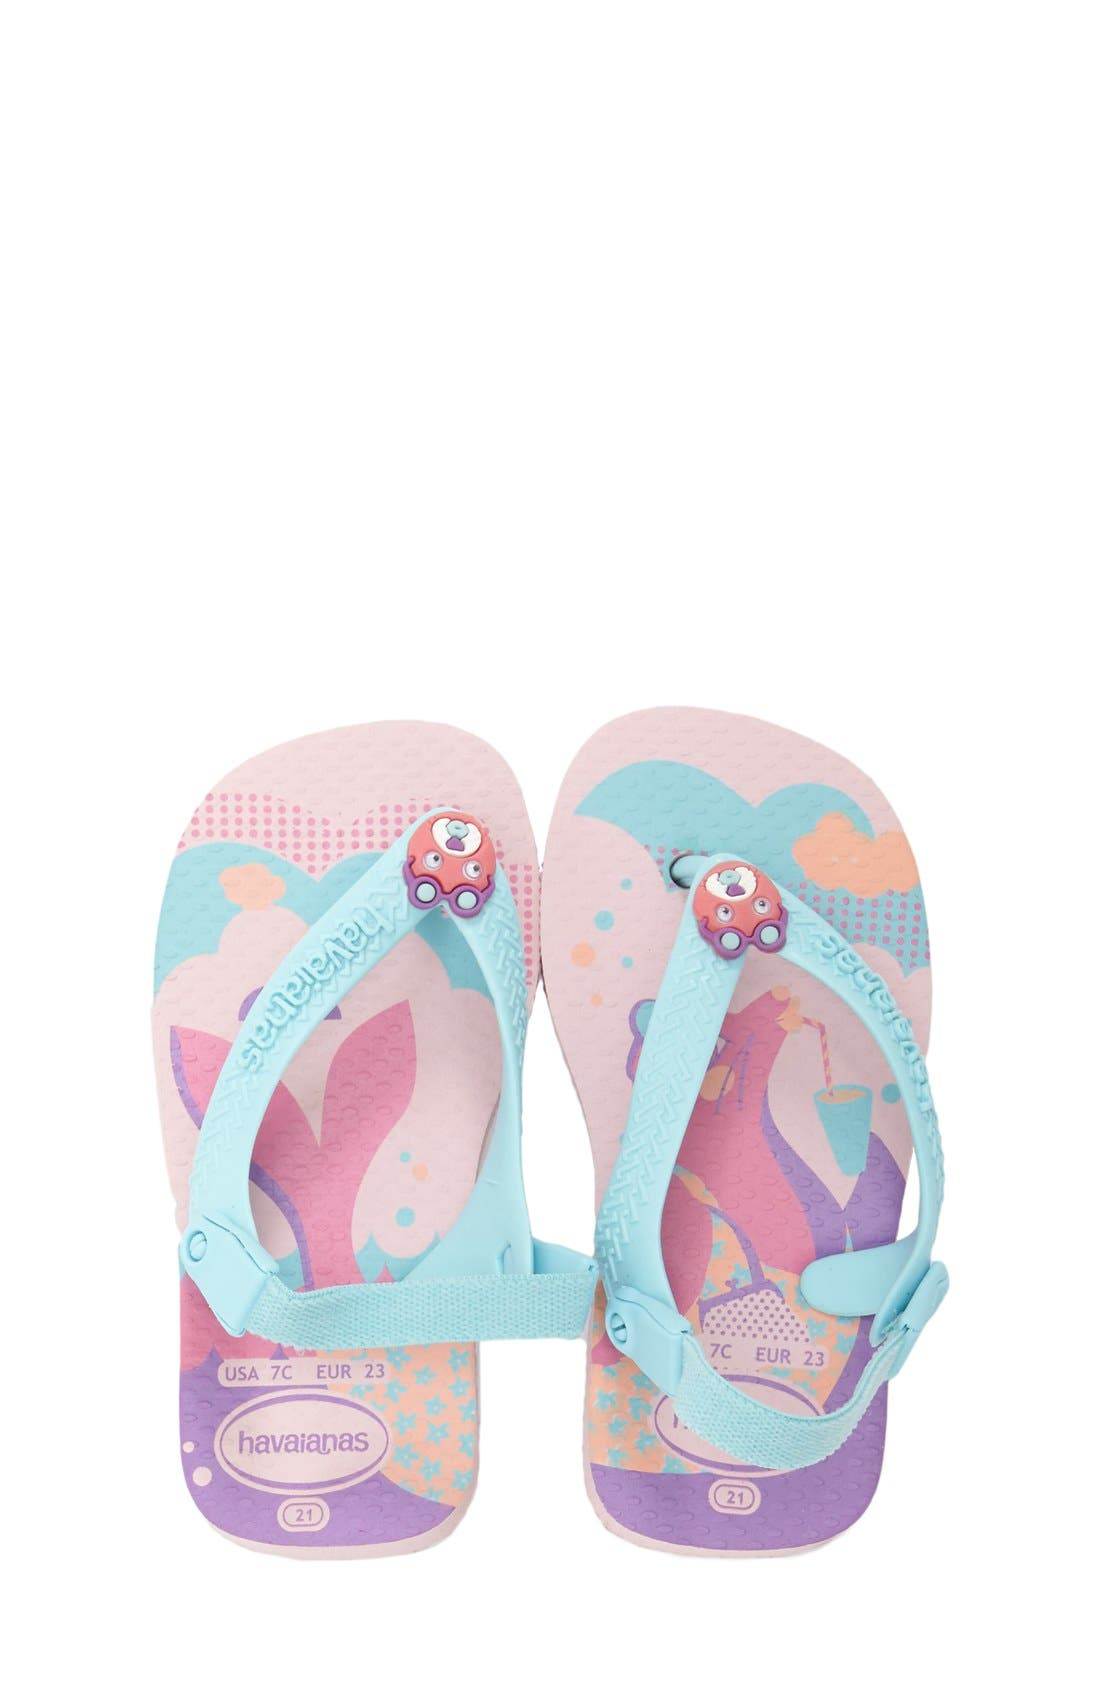 Alternate Image 1 Selected - Havaianas 'Baby Pets' Sandal (Baby, Walker & Toddler)